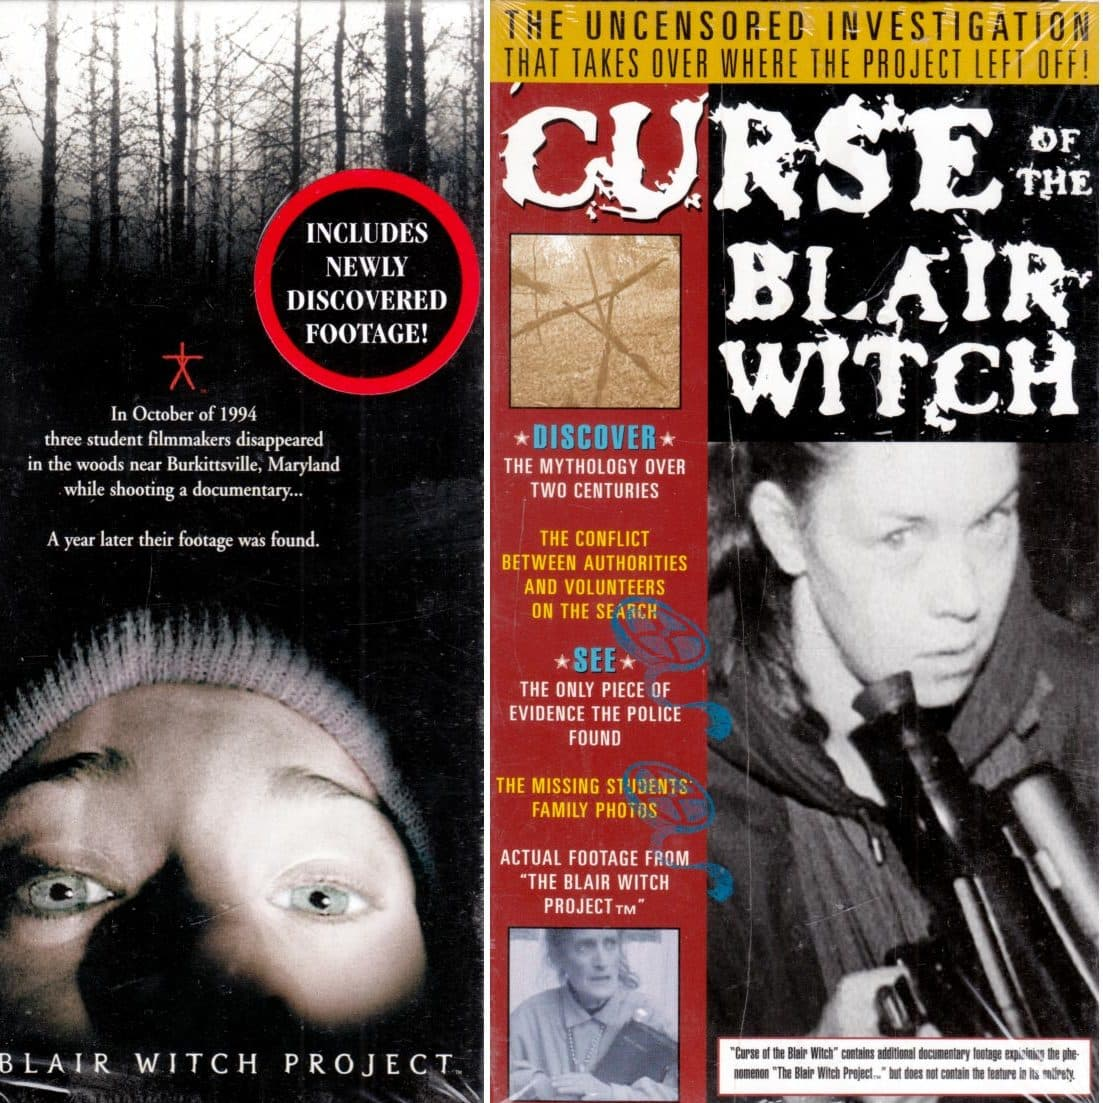 037261 e1571997599572 The Blair Witch Project: 20 Behind-The-Scenes Nuggets That Made It The Most Successful Film Ever